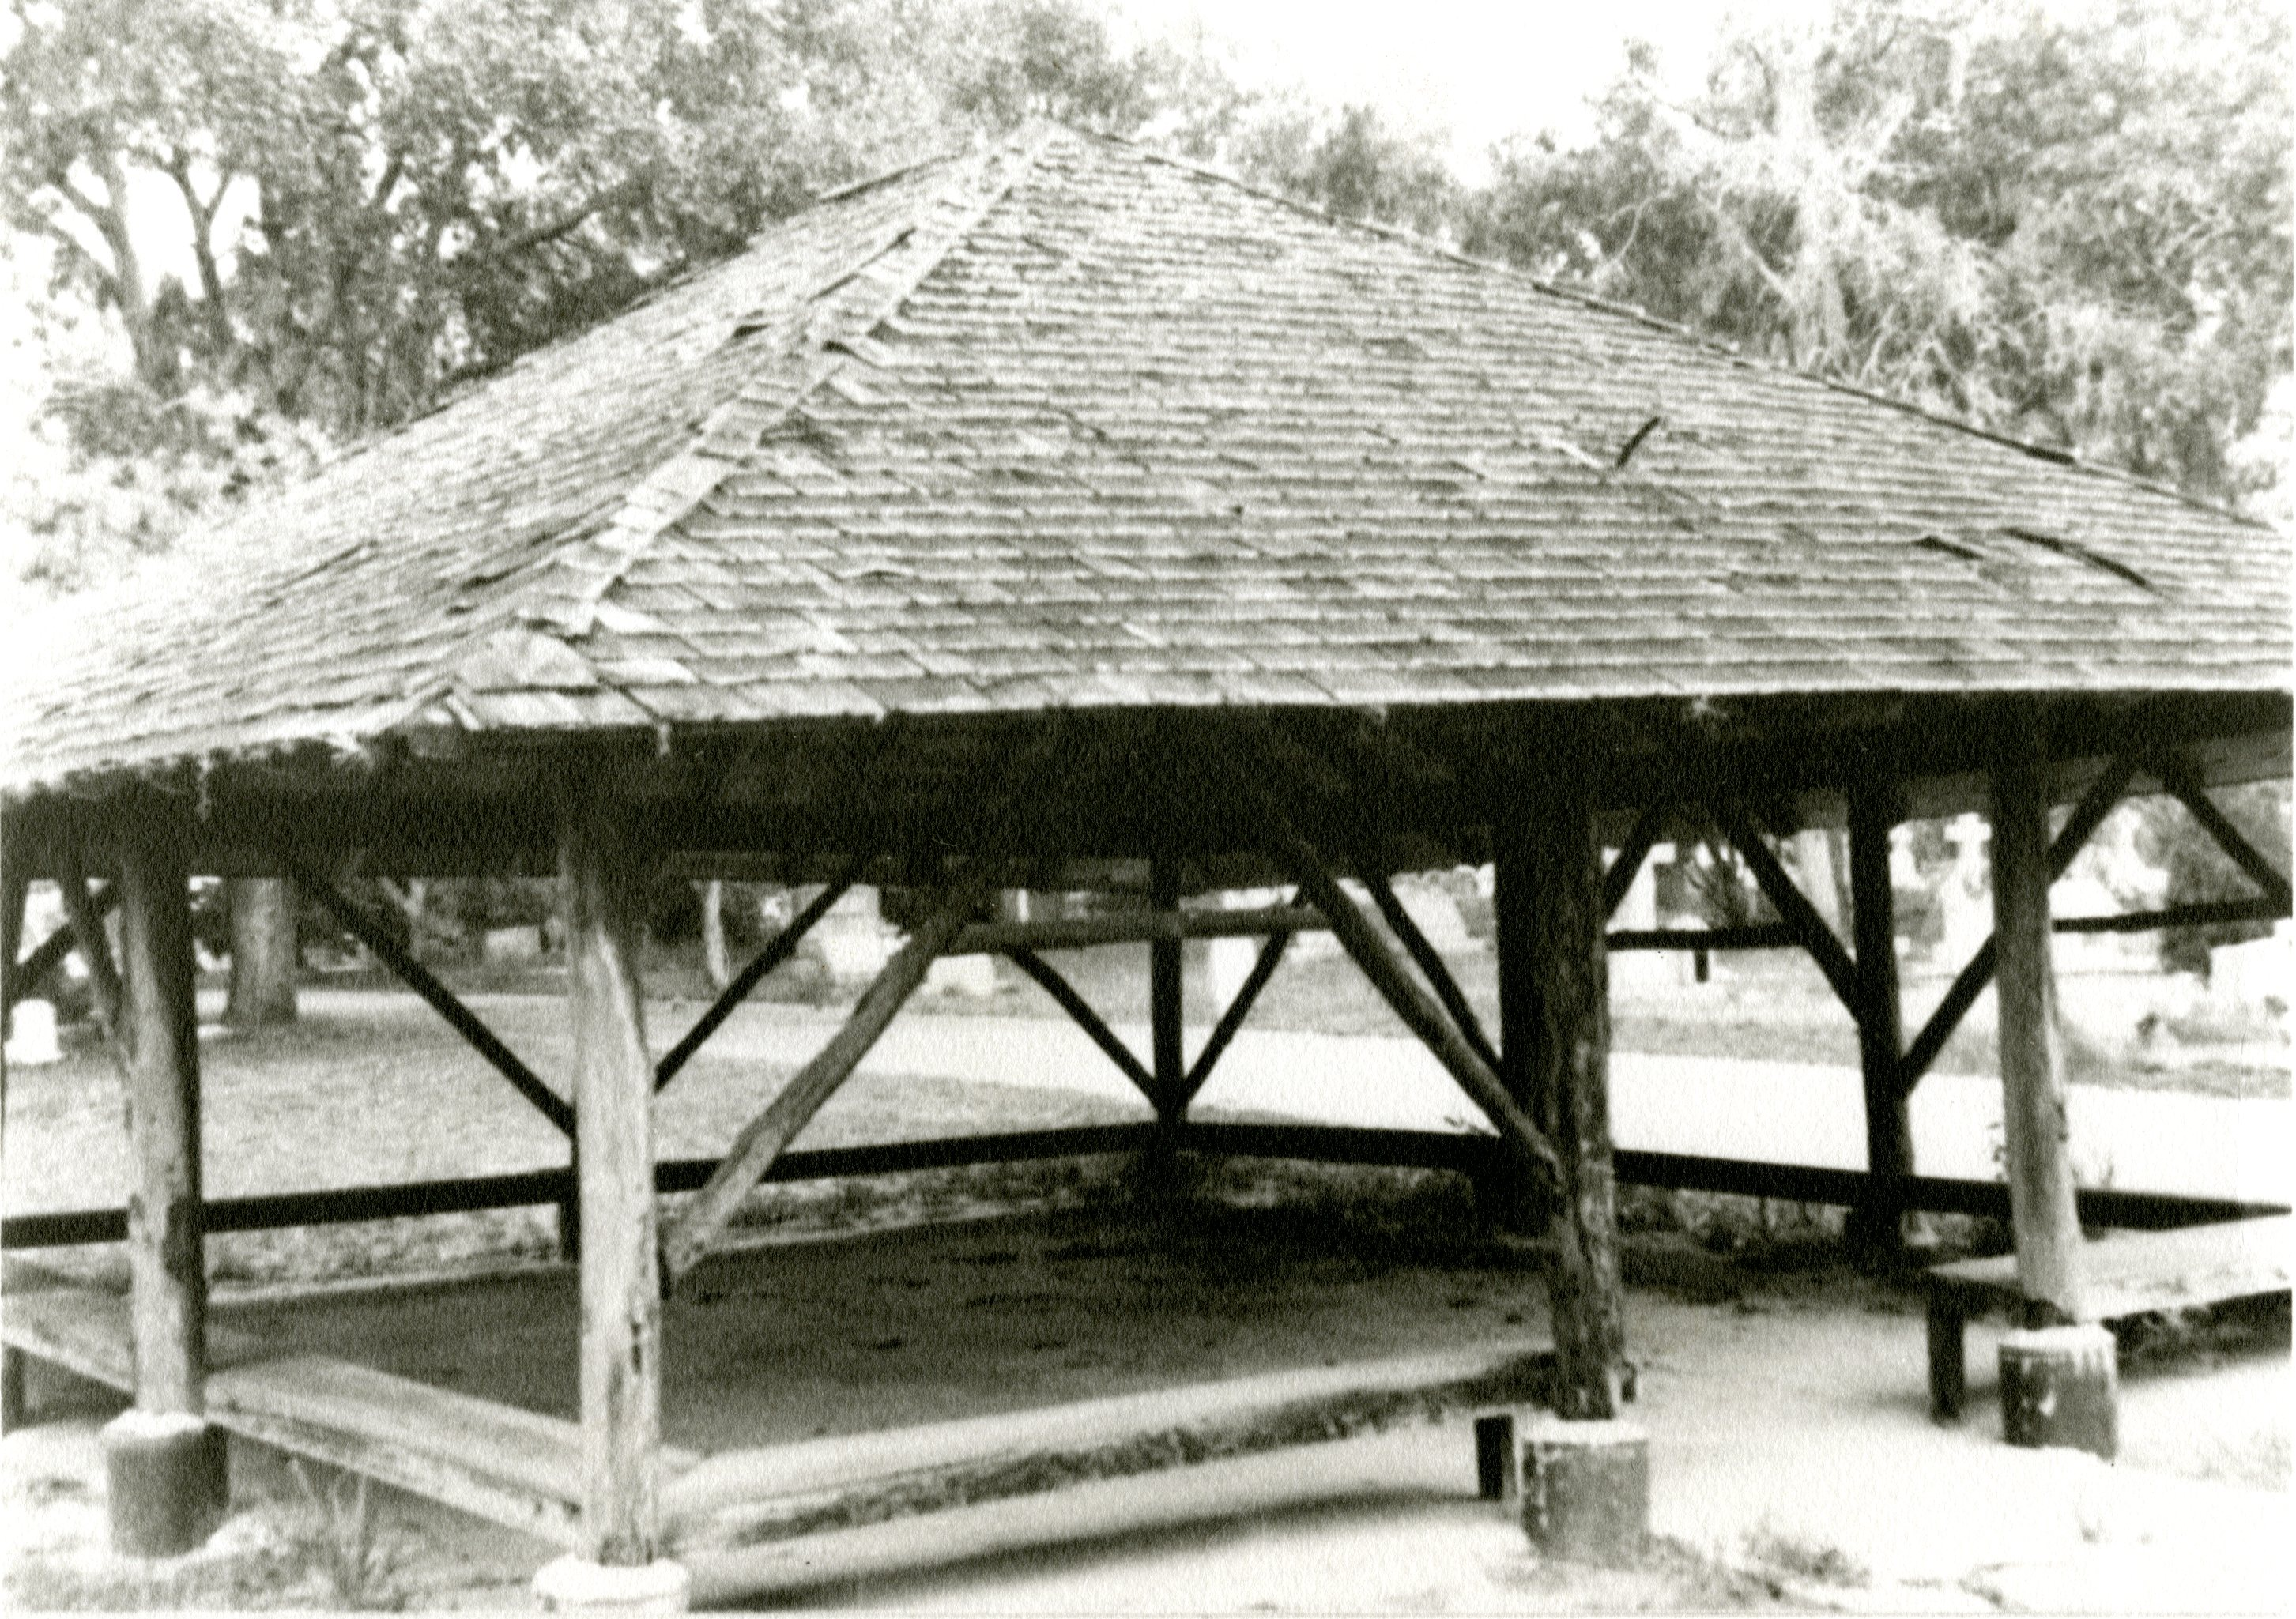 Safford Pavilion at Cycadia Cemetery in Tarpon Springs, Florida, undated.